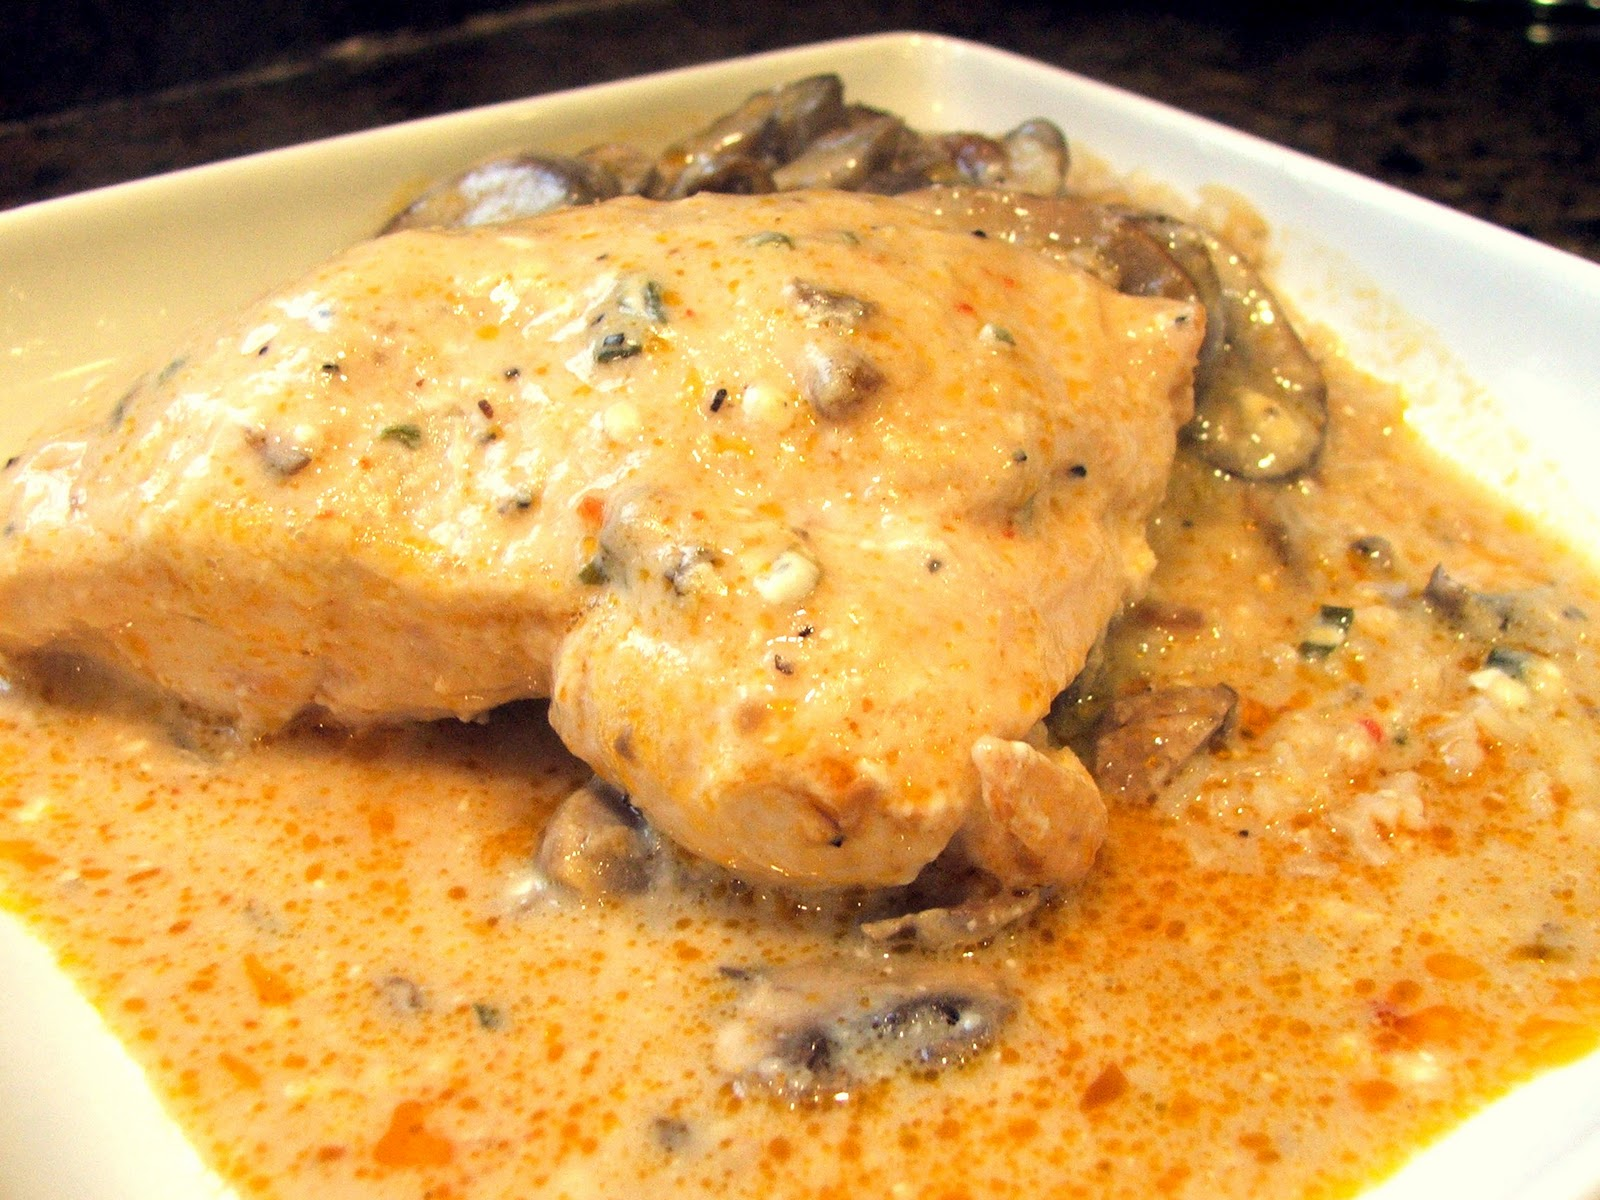 Crockpot recipes using boneless chicken breast